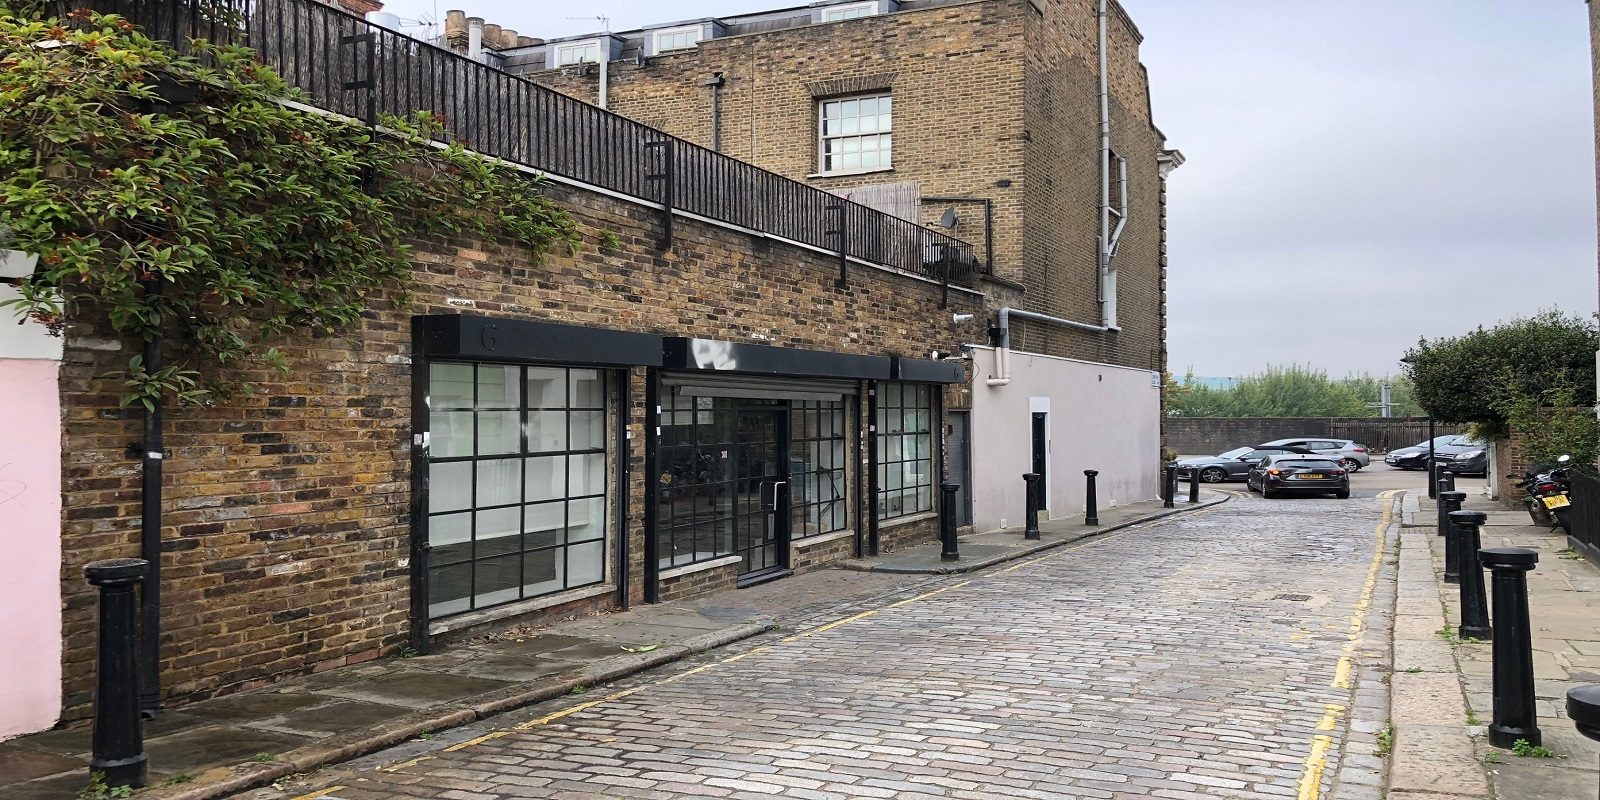 SELF-CONTAINED OFFICES TO BE LET IN KENTISH TOWN